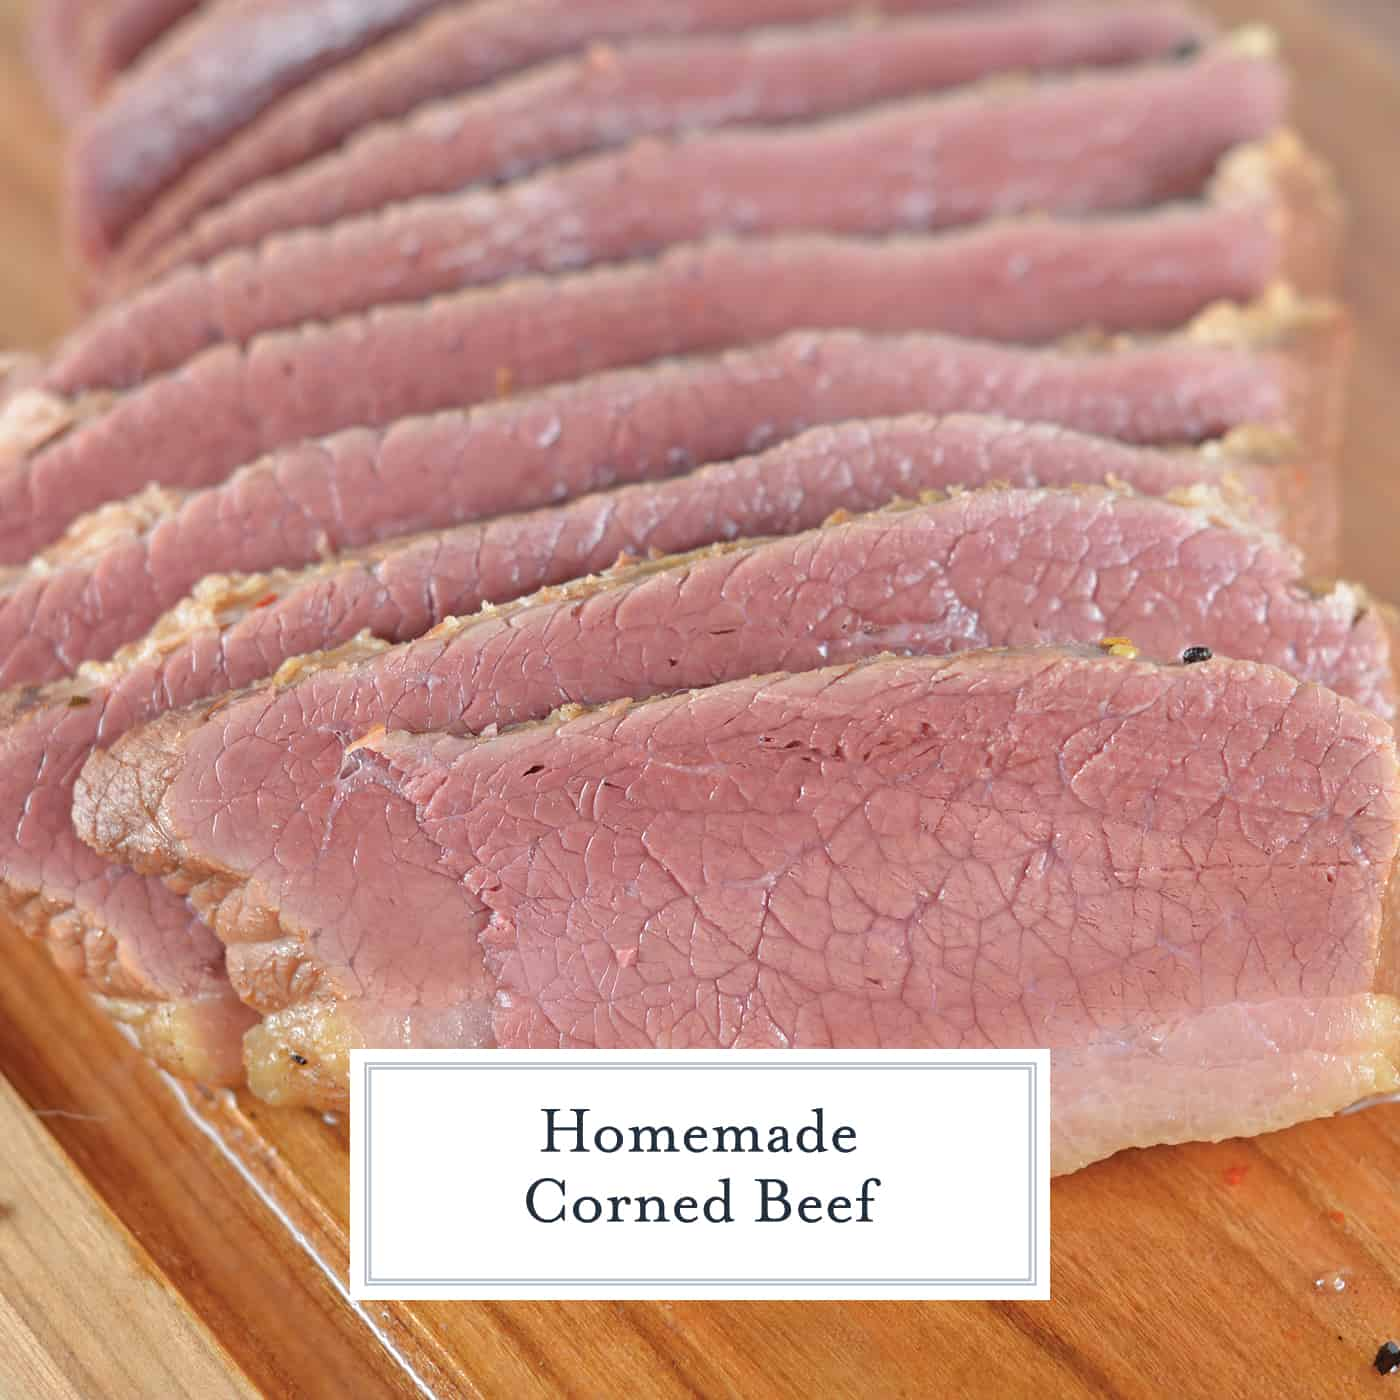 slices of homemade corned beef